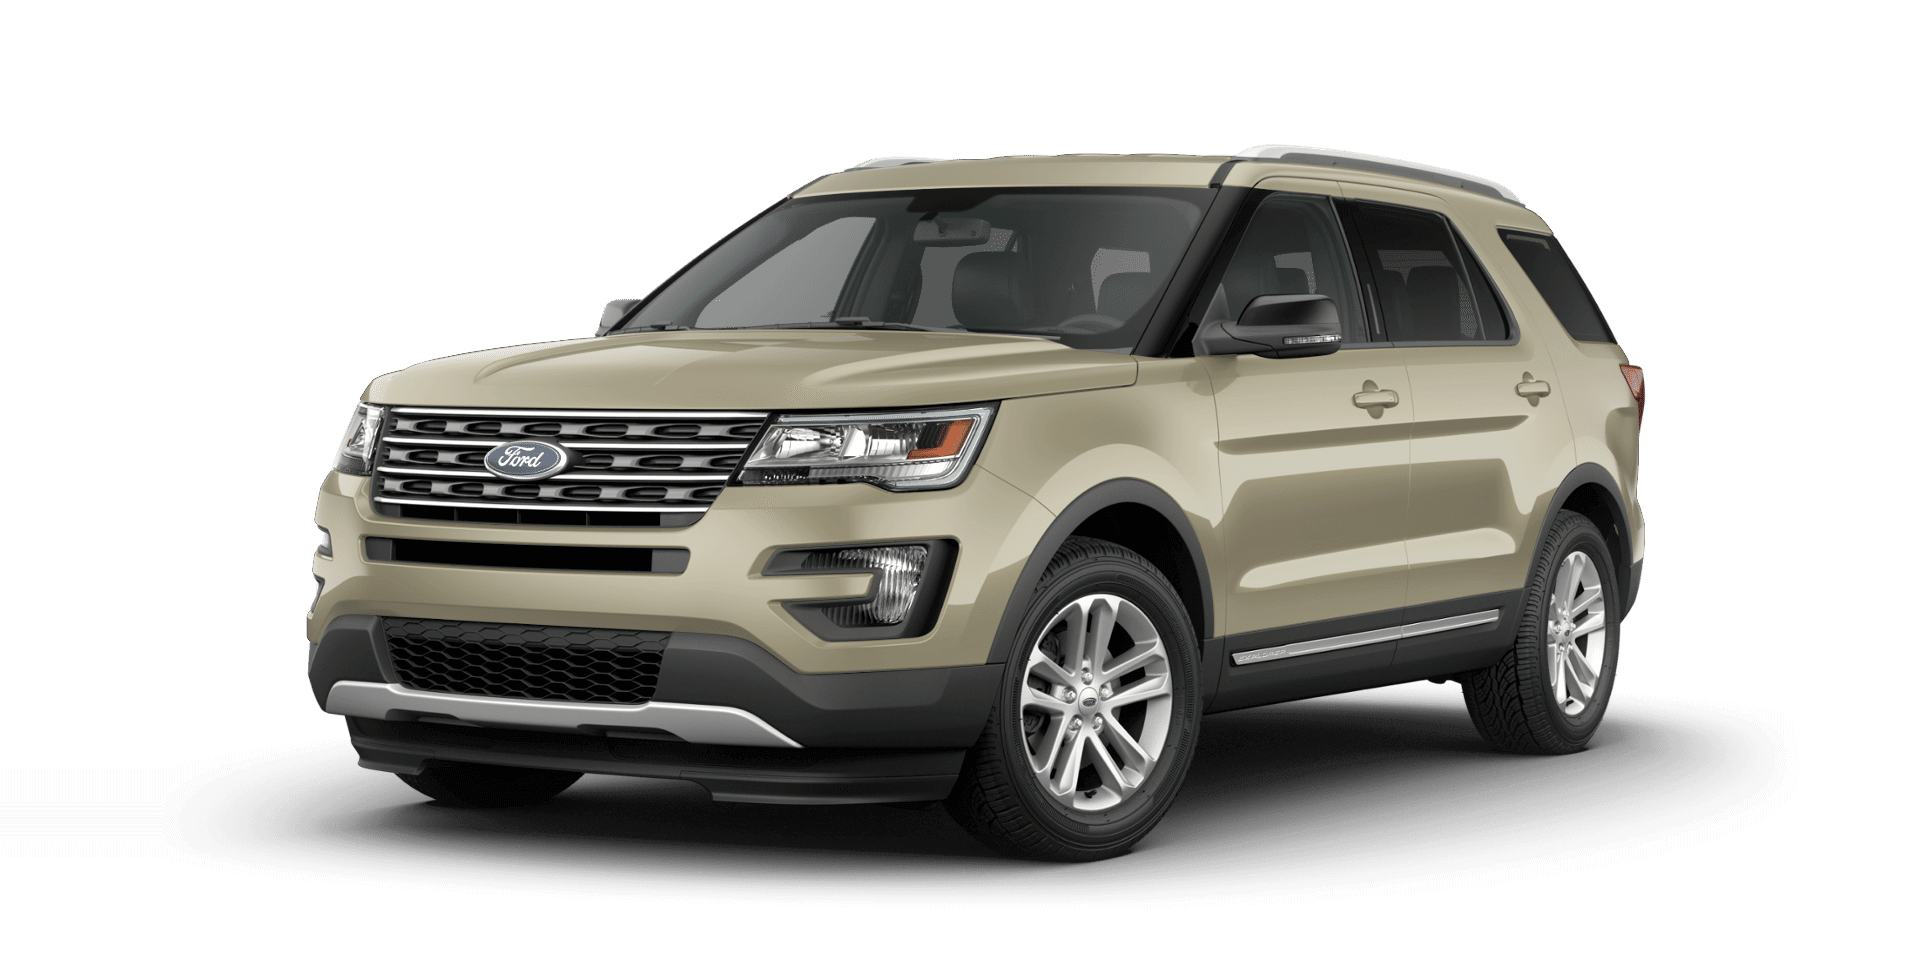 2018 ford explorer limited price. Black Bedroom Furniture Sets. Home Design Ideas